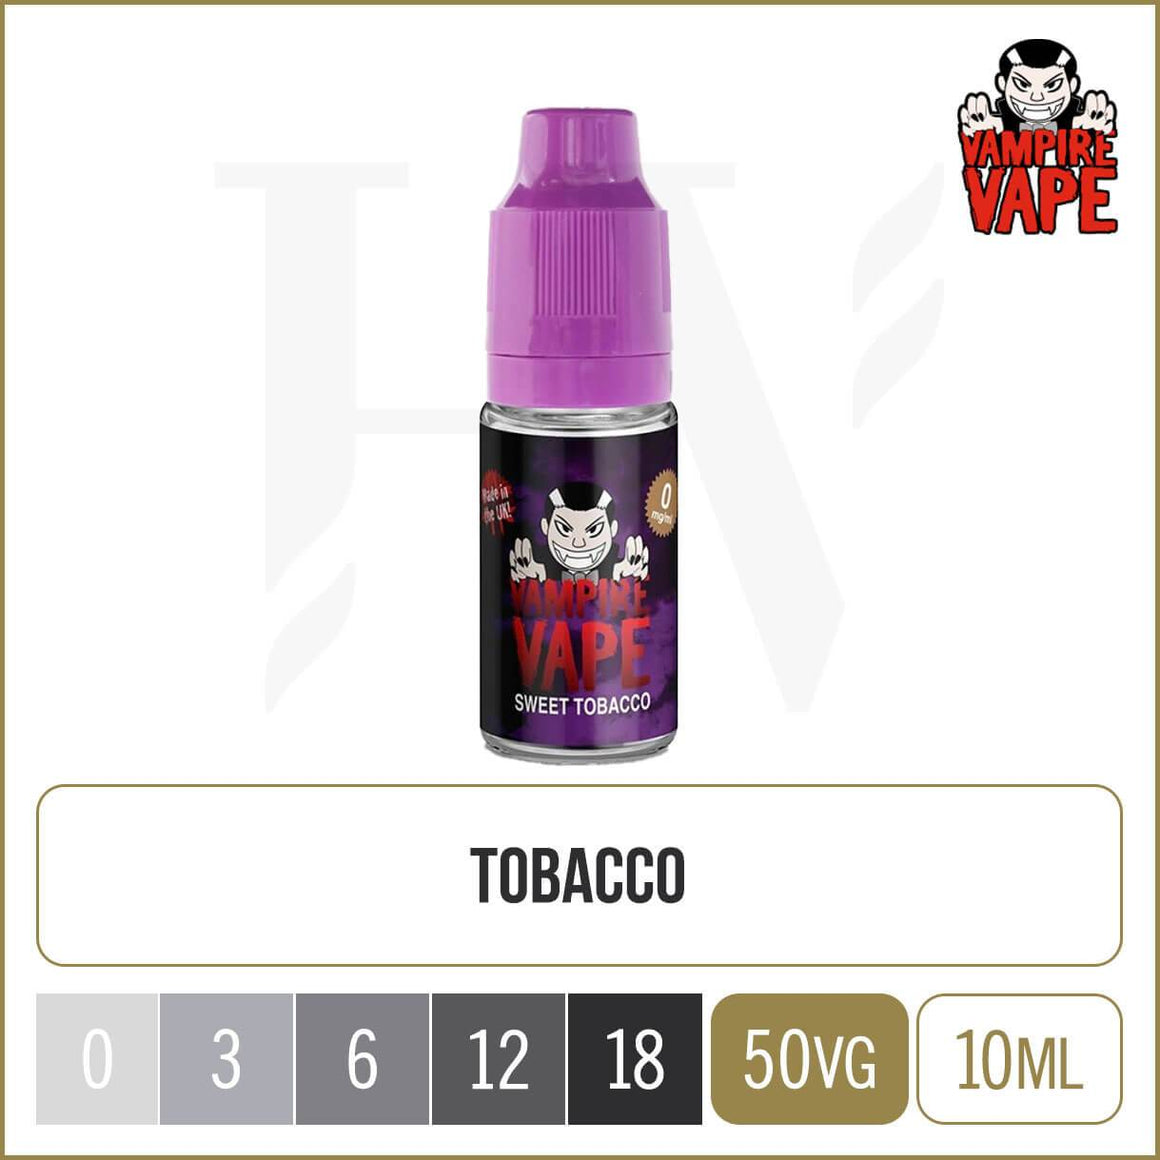 Vampire Vape sweet tobacco e liquid 10ml